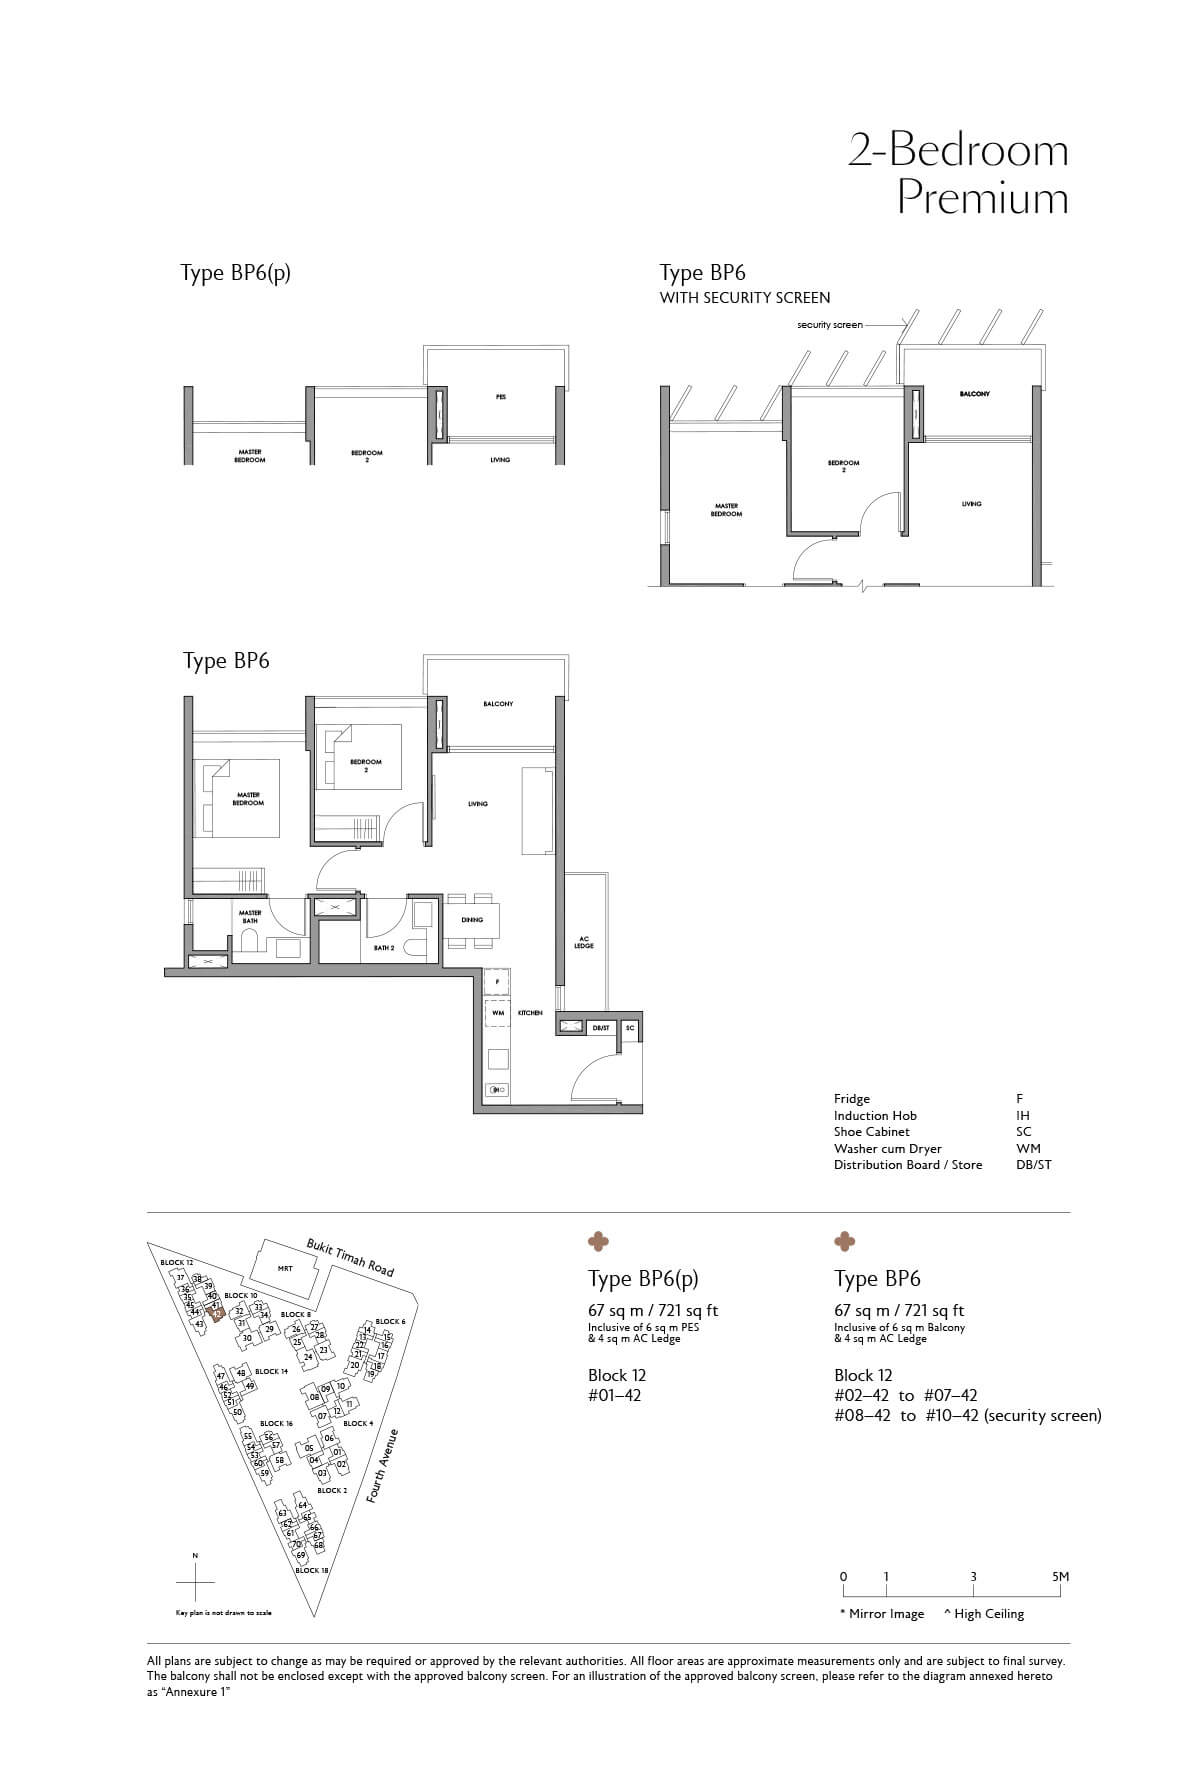 Fourth Avenue Residences Floor Plan 2 Bedroom Premium Type BP6